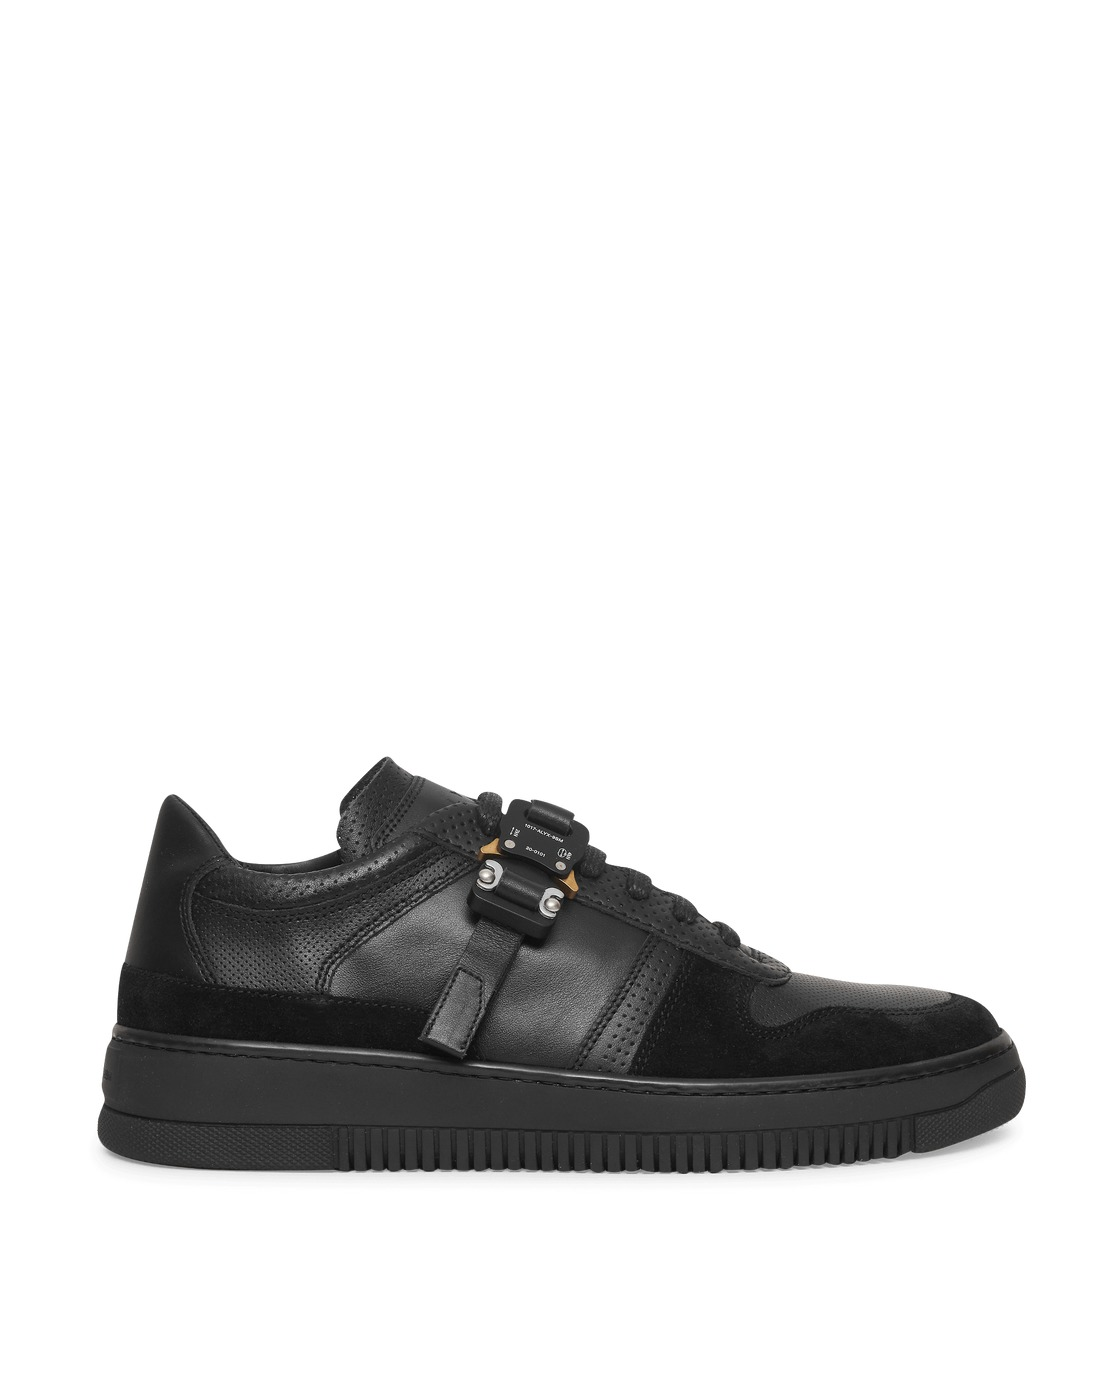 Photo: 1017 Alyx 9sm Leather Buckle Sneakers Black